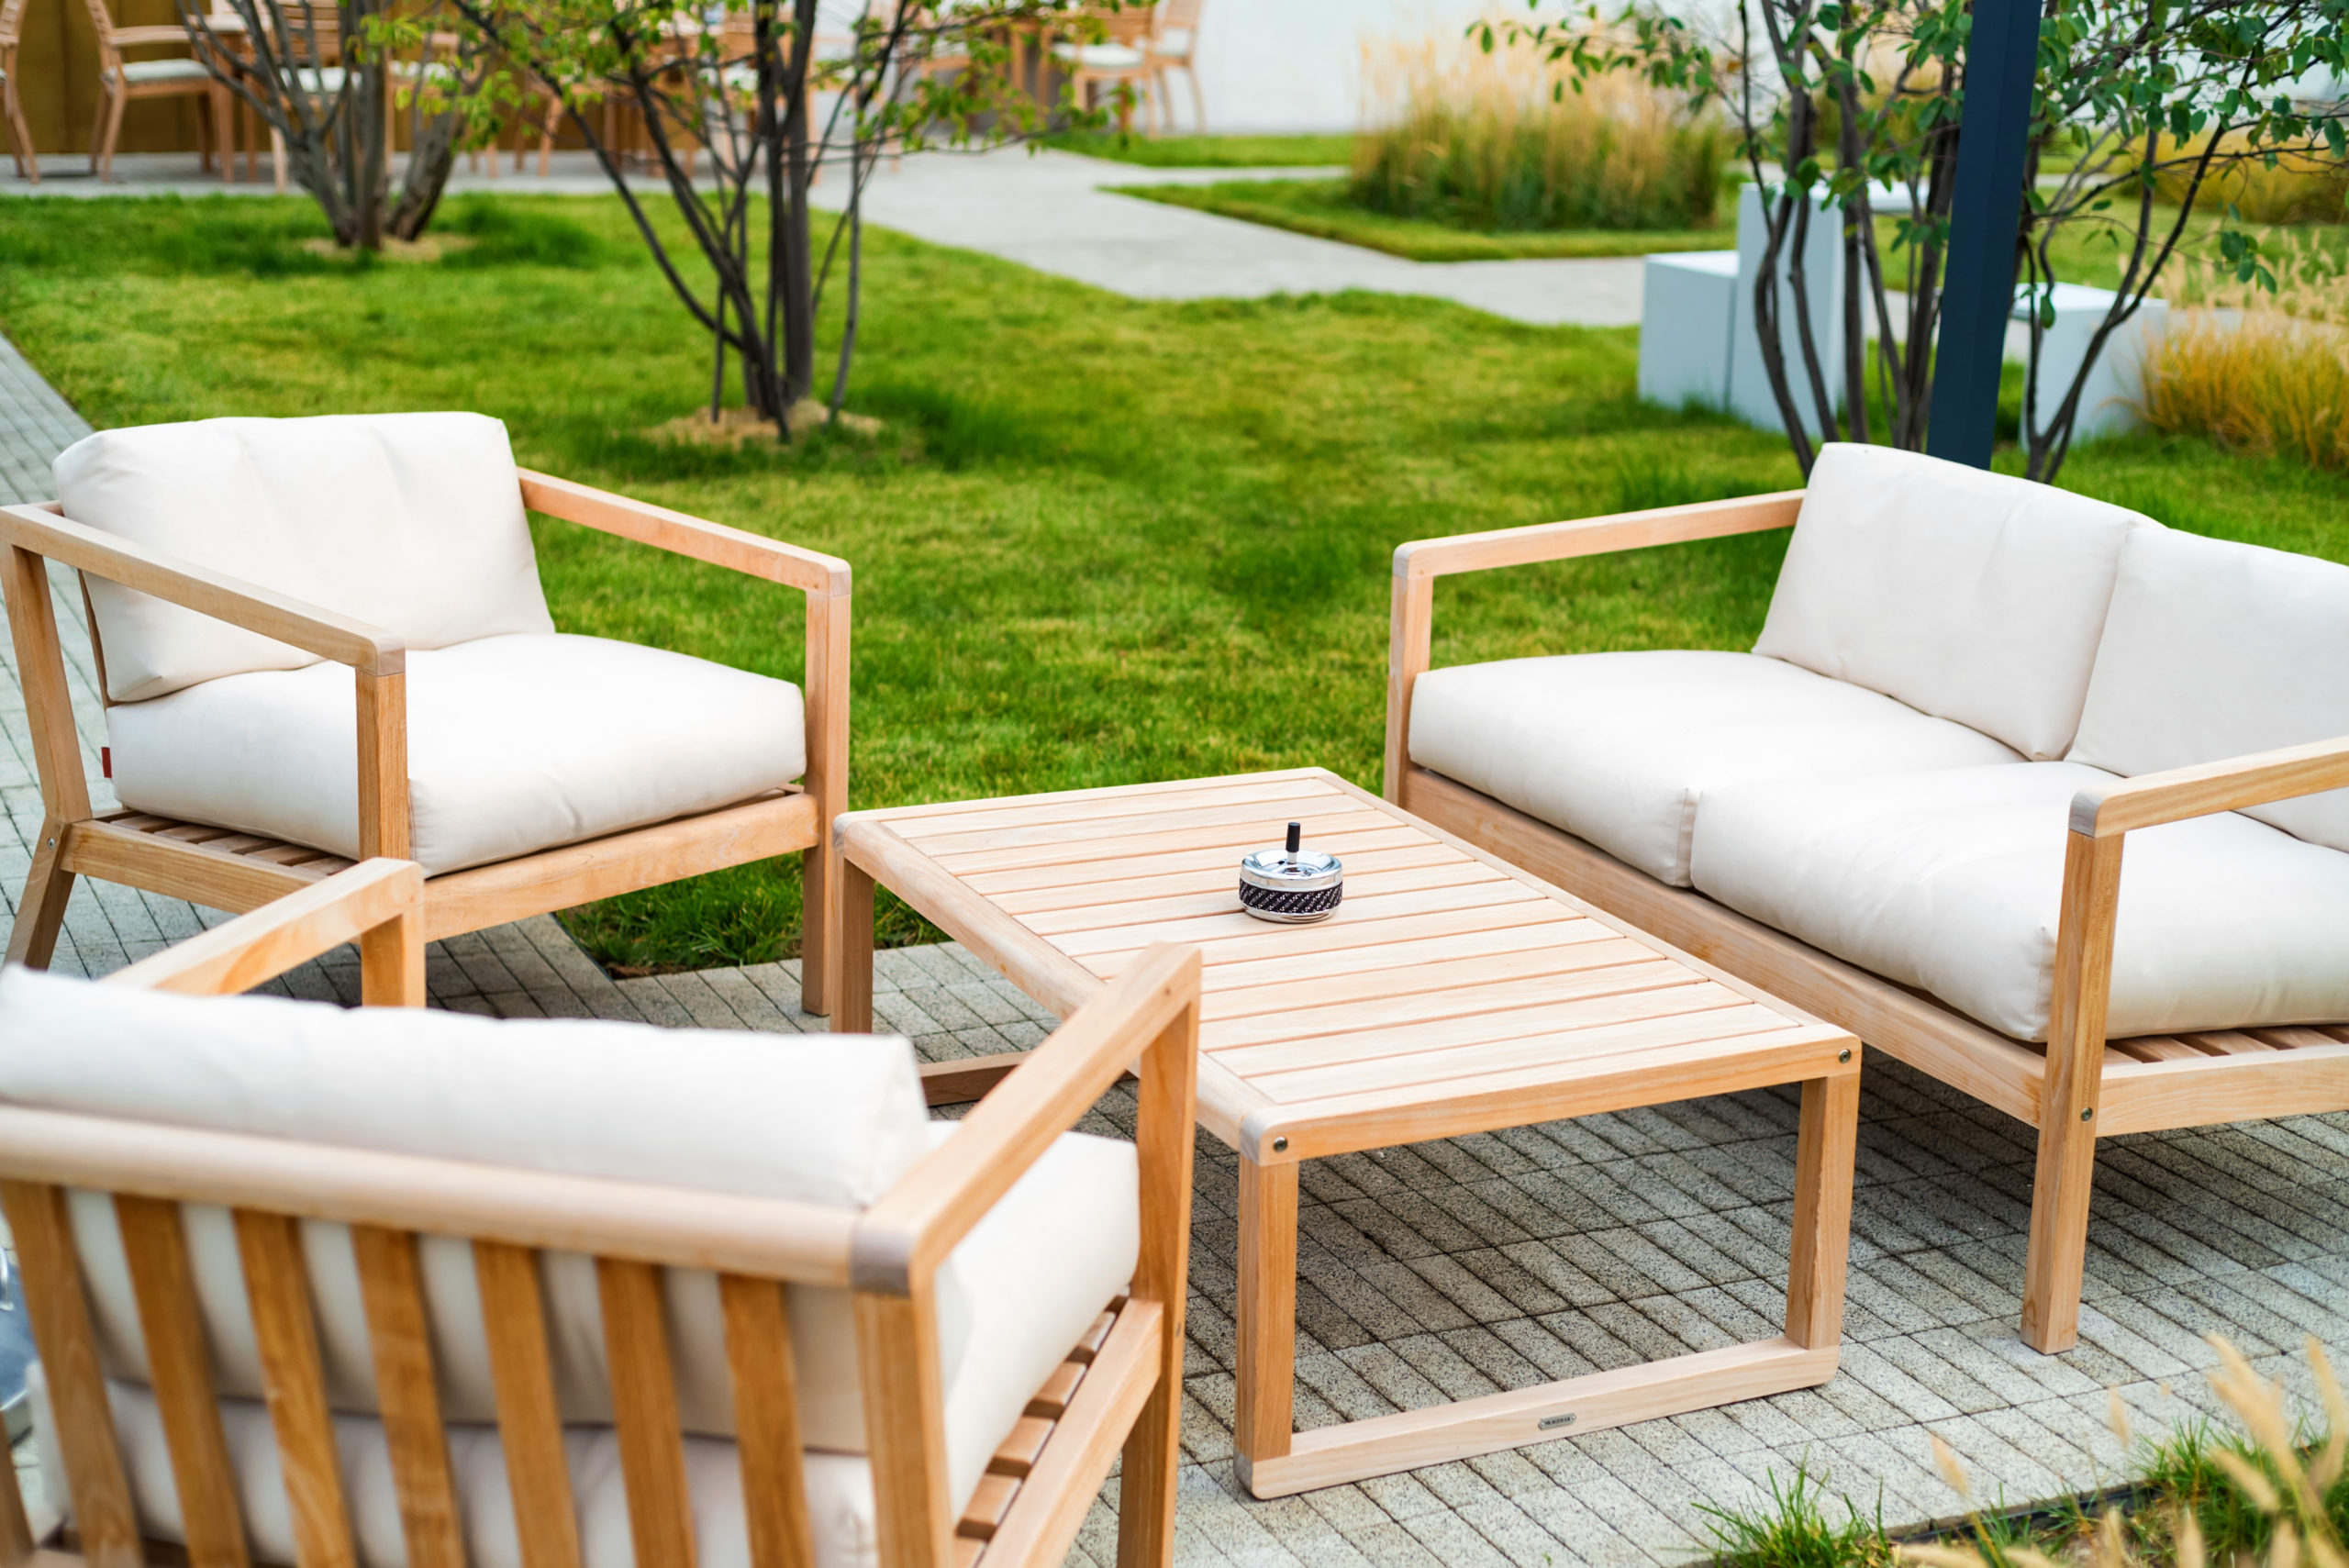 The outdoor furniture market is seeing robust growth.